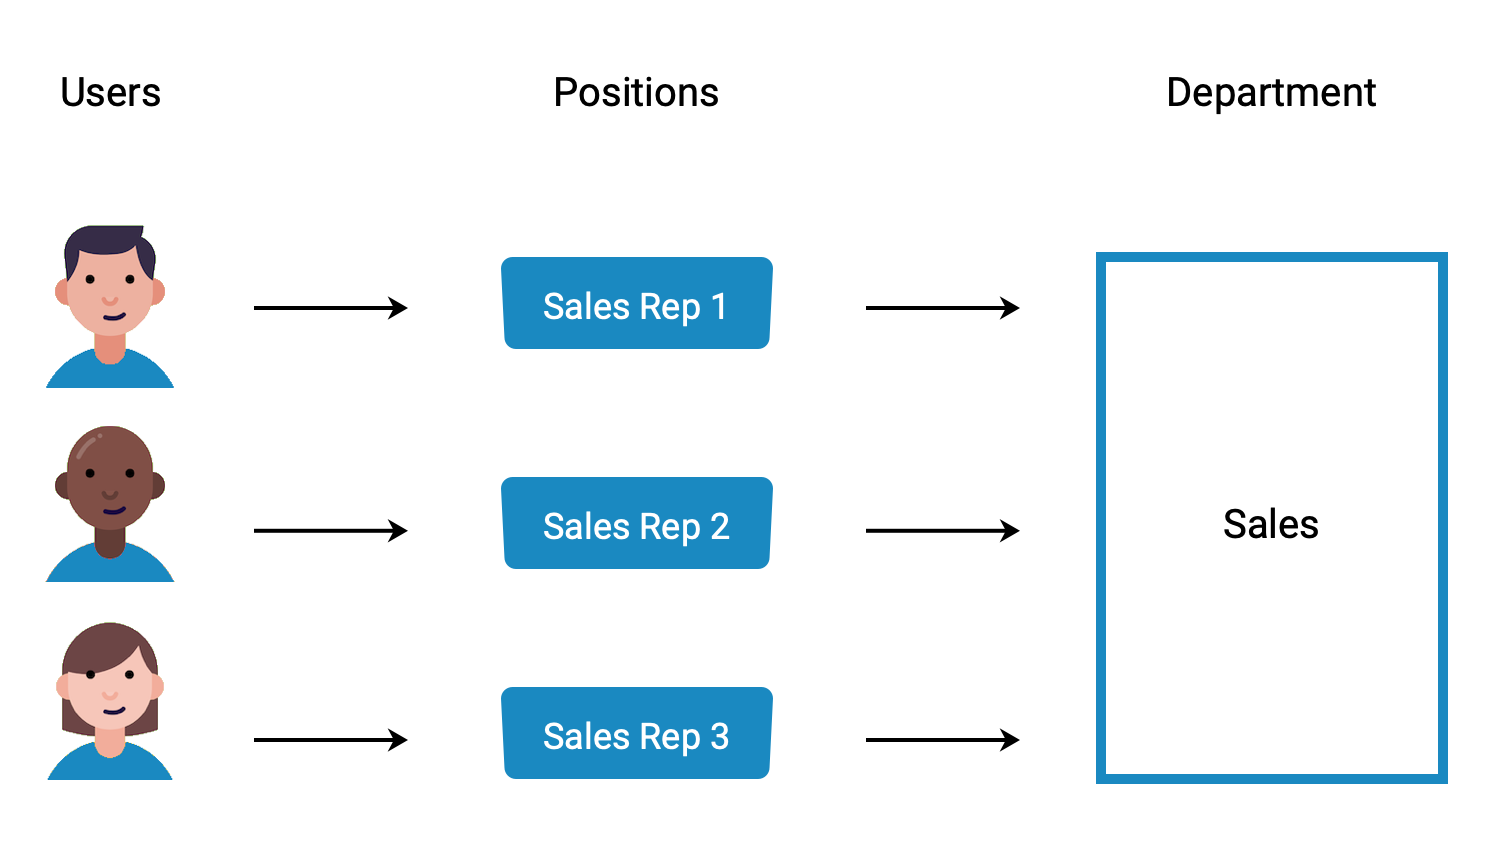 A diagram of positions grouped in one department